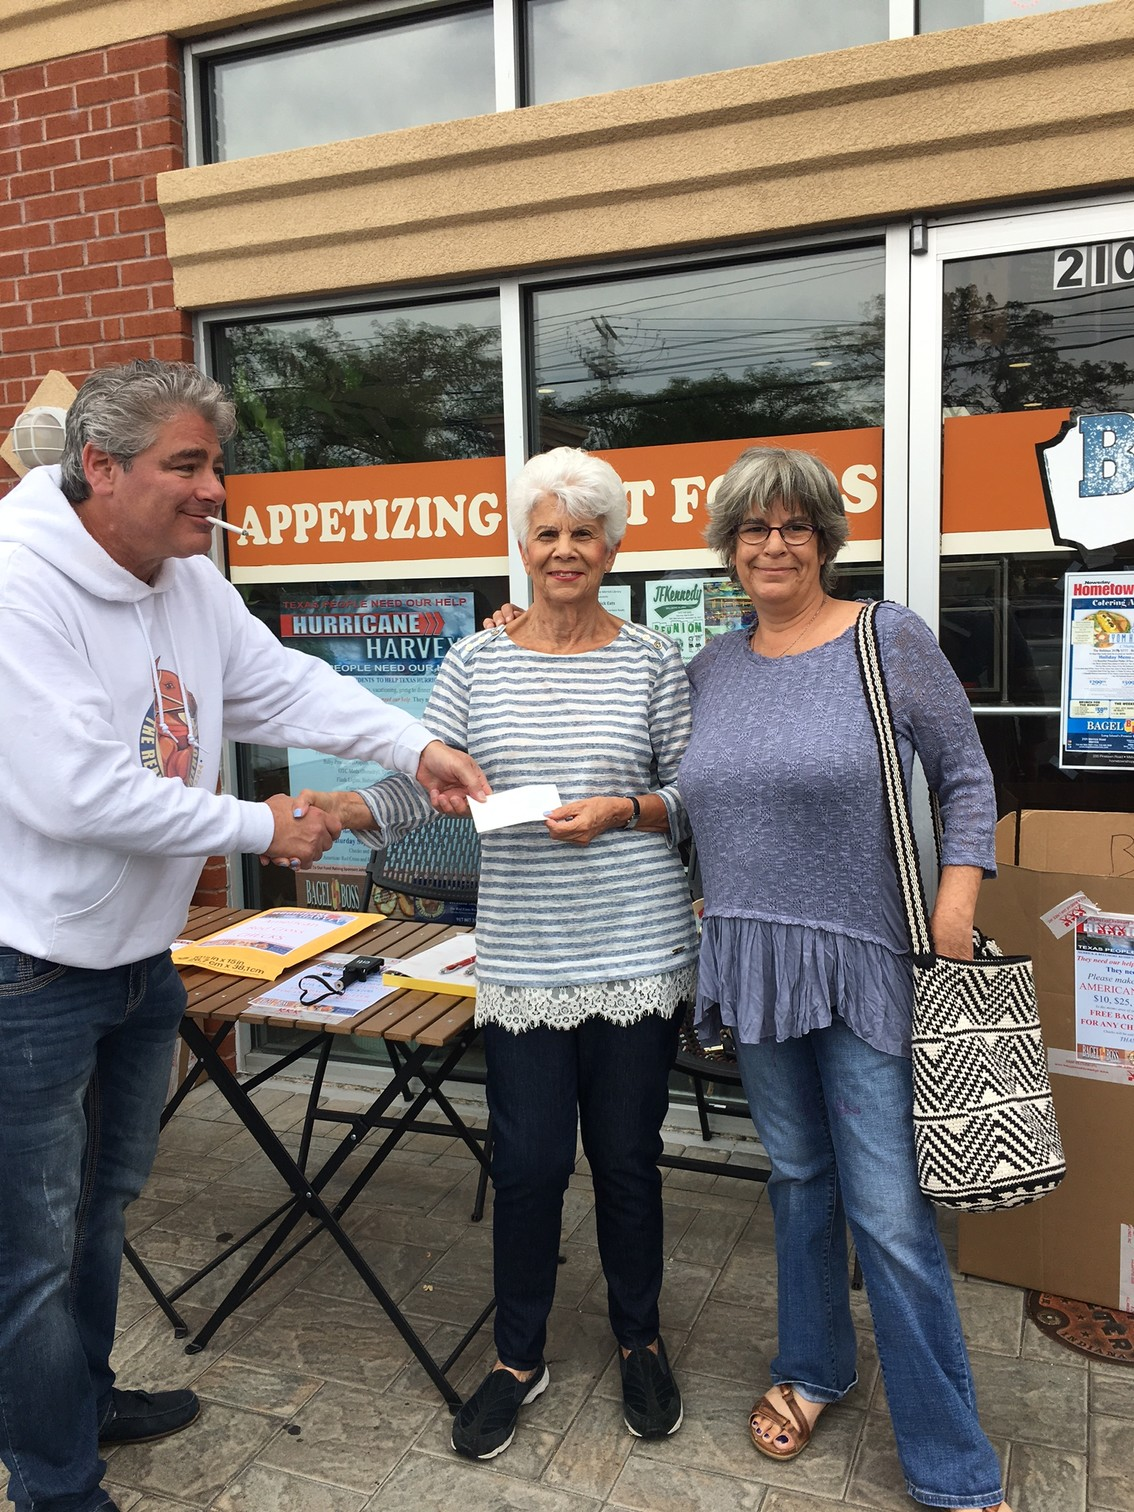 Ron Steiger, left, was one of the organizers of a supply drive for Hurricane Harvey victims on Saturday. Helen Pazer and Robin Gross donated a check for relief efforts.